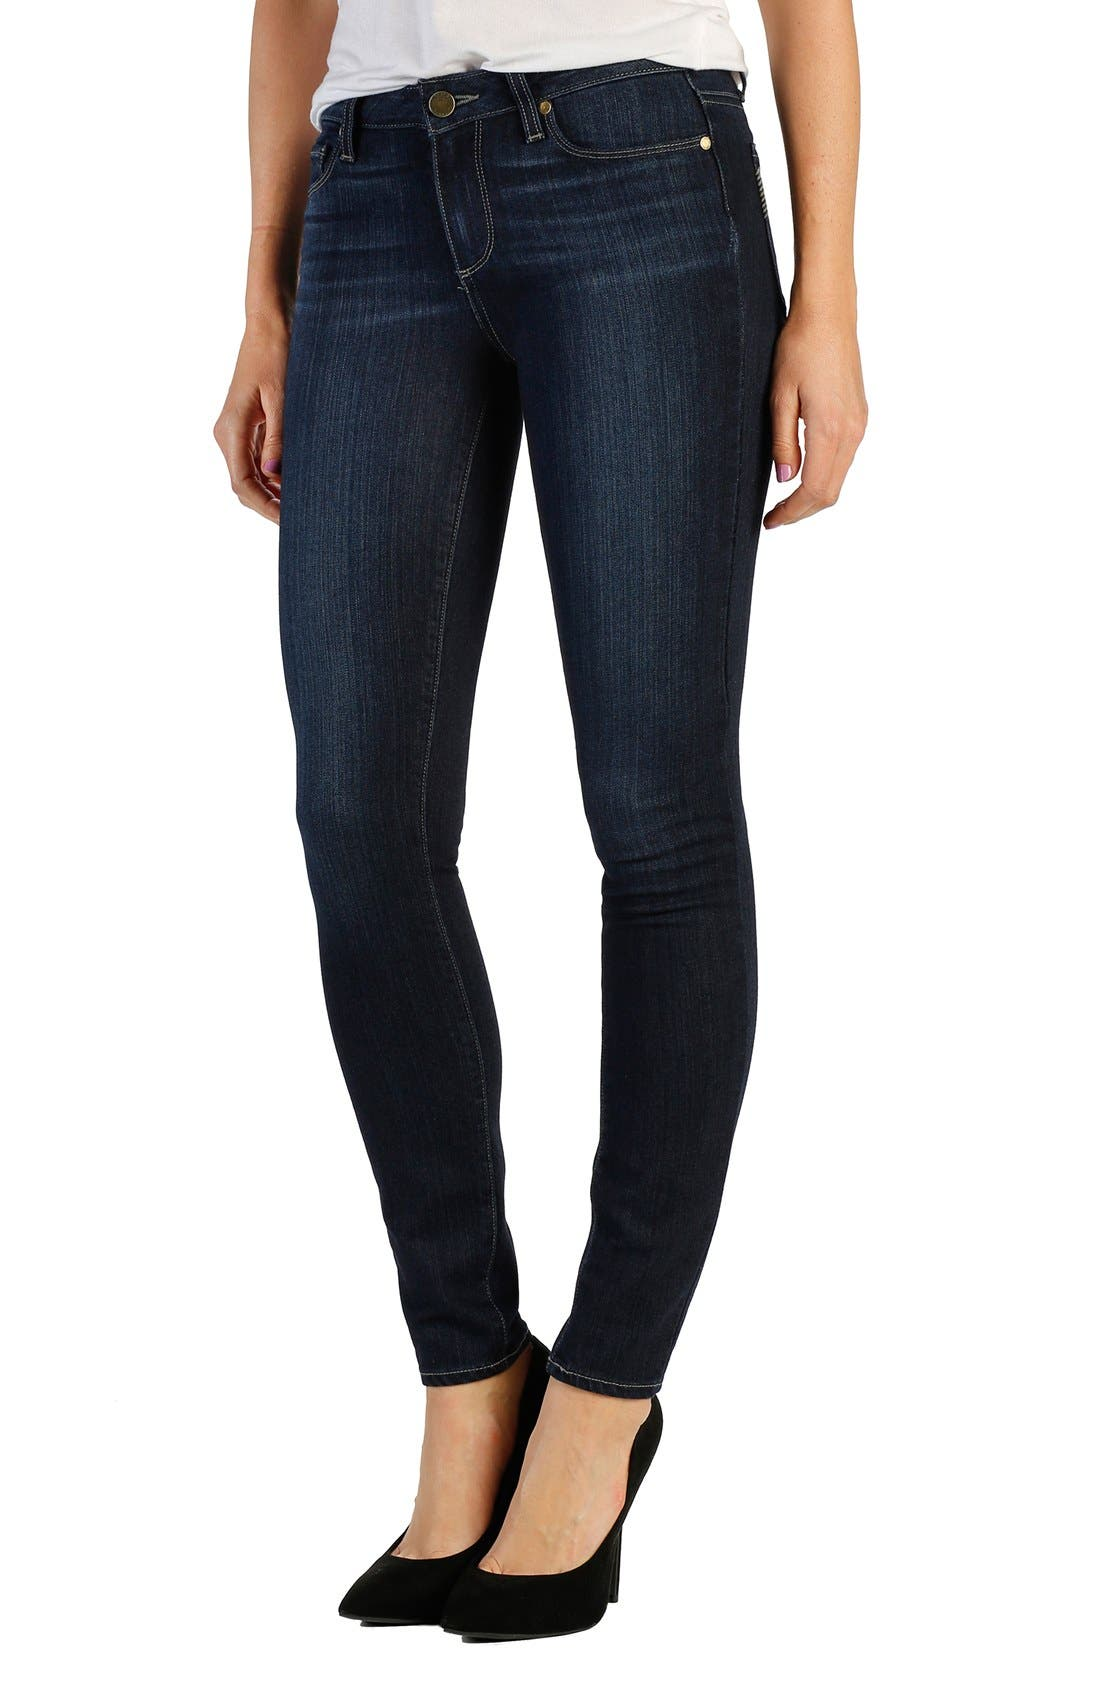 Alternate Image 1 Selected - Paige Denim 'Verdugo' Ultra Skinny Jeans (Alanis)